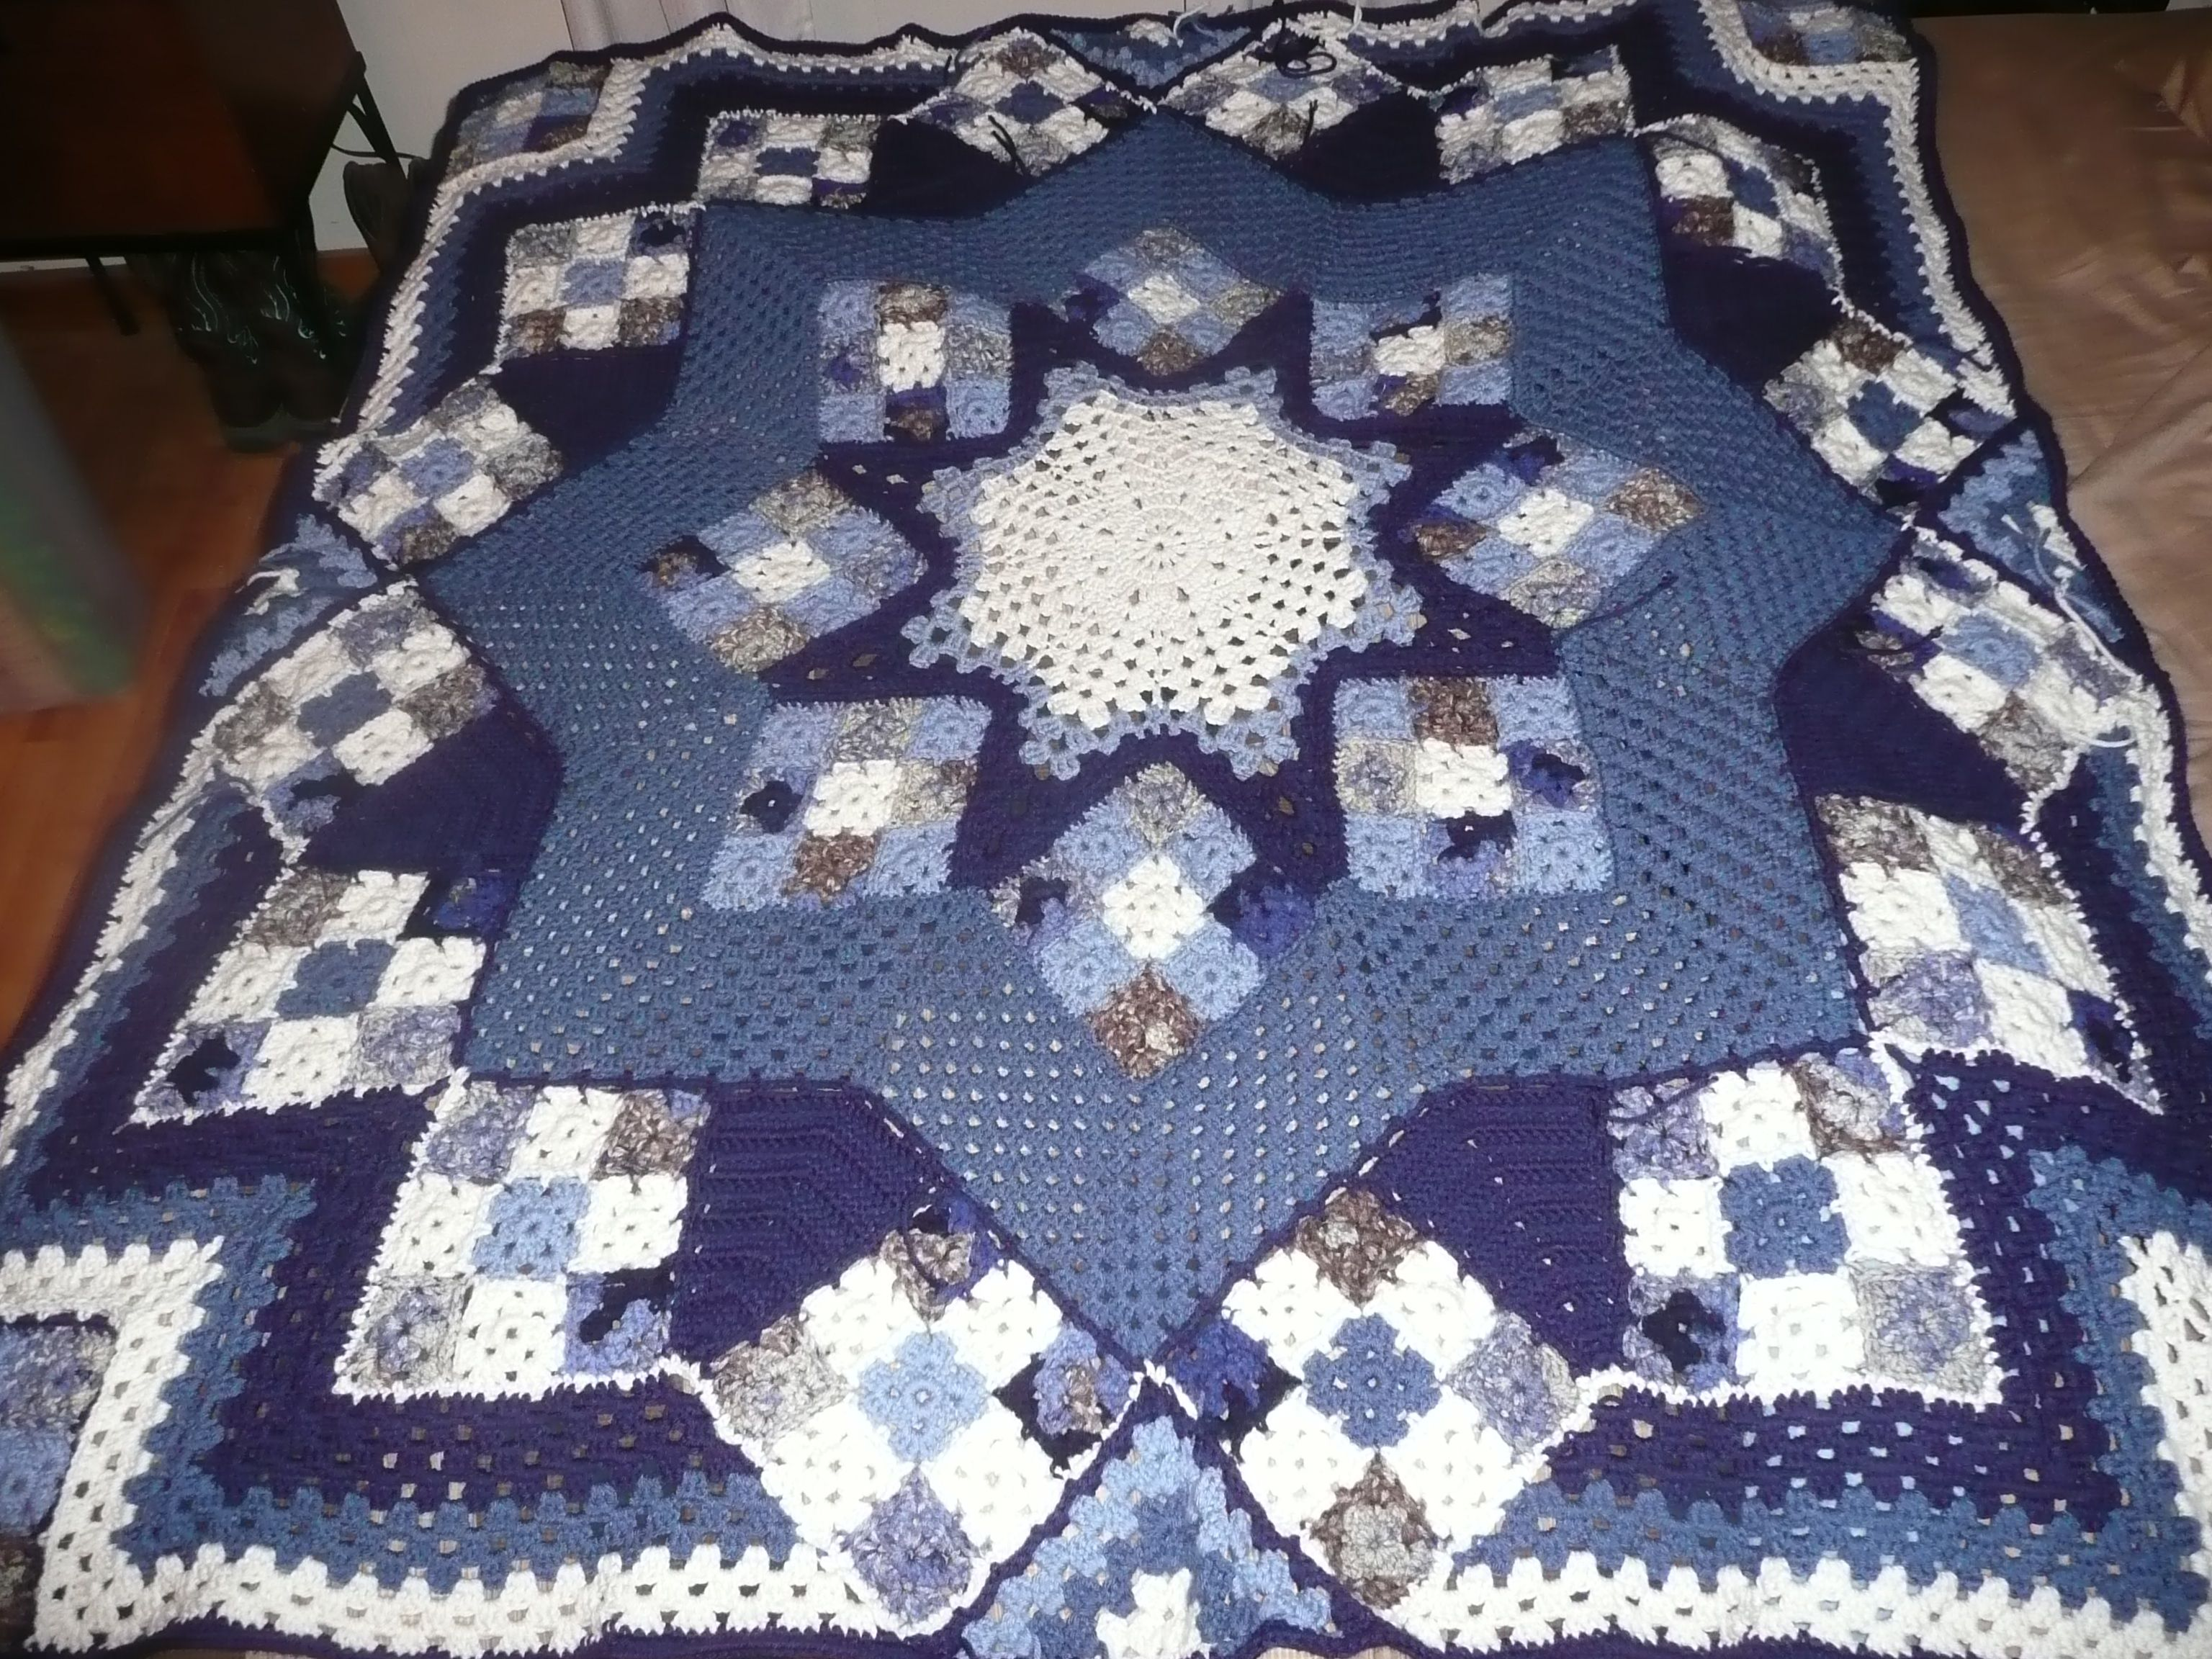 Blue star afghan for morgan my own crochet pinterest afghans blue star afghan for morgan bankloansurffo Images